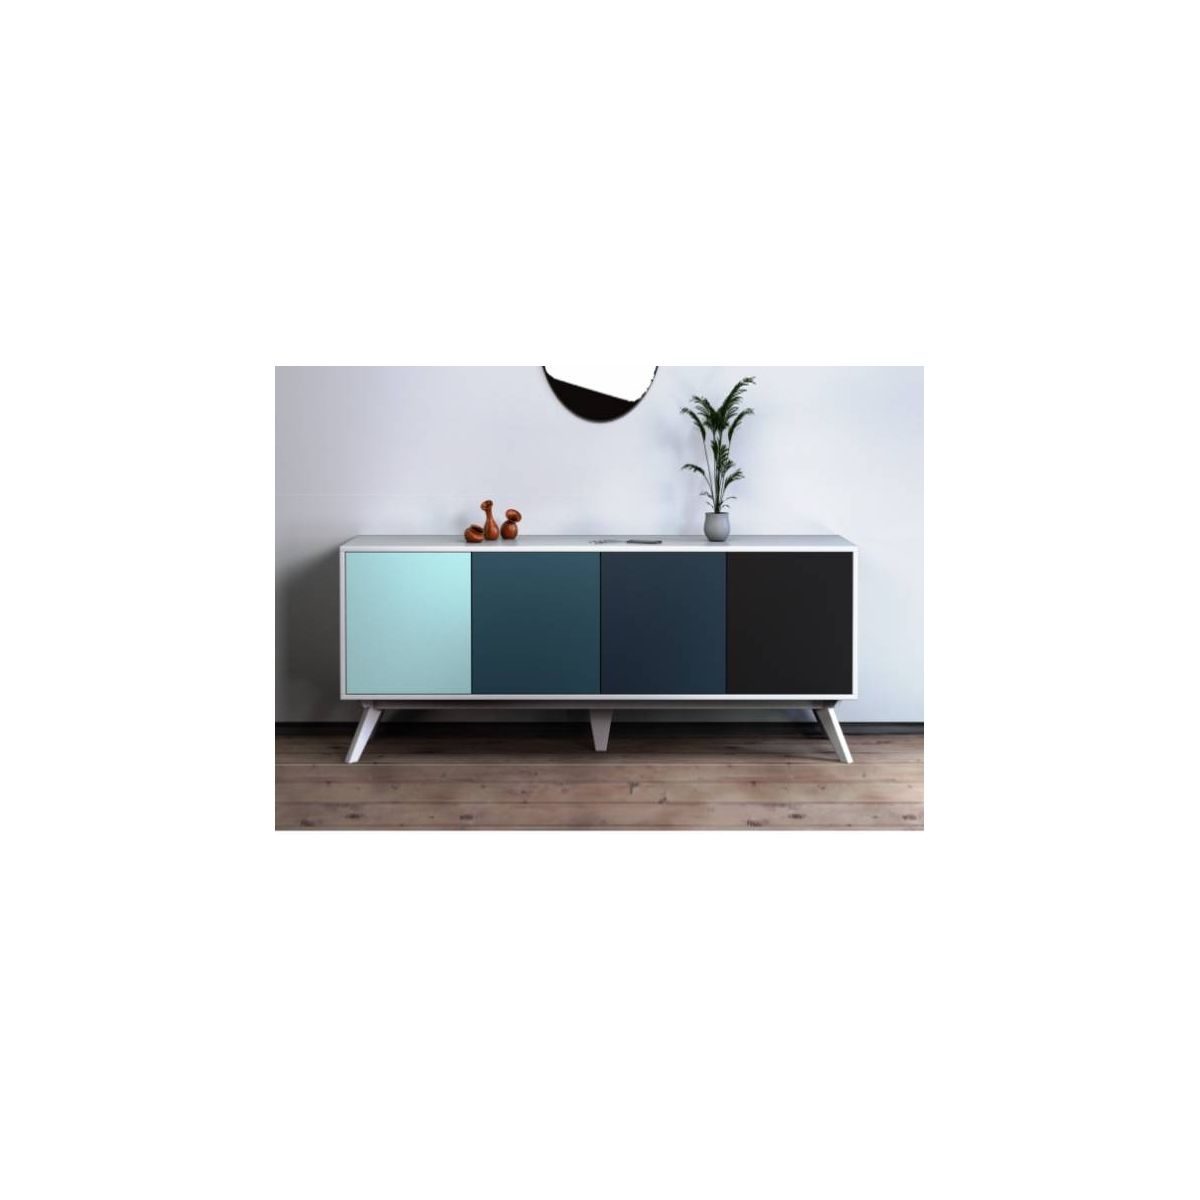 Portes Buffet Zendart Design 4 Wall2time Personnalisable hdstxQrC